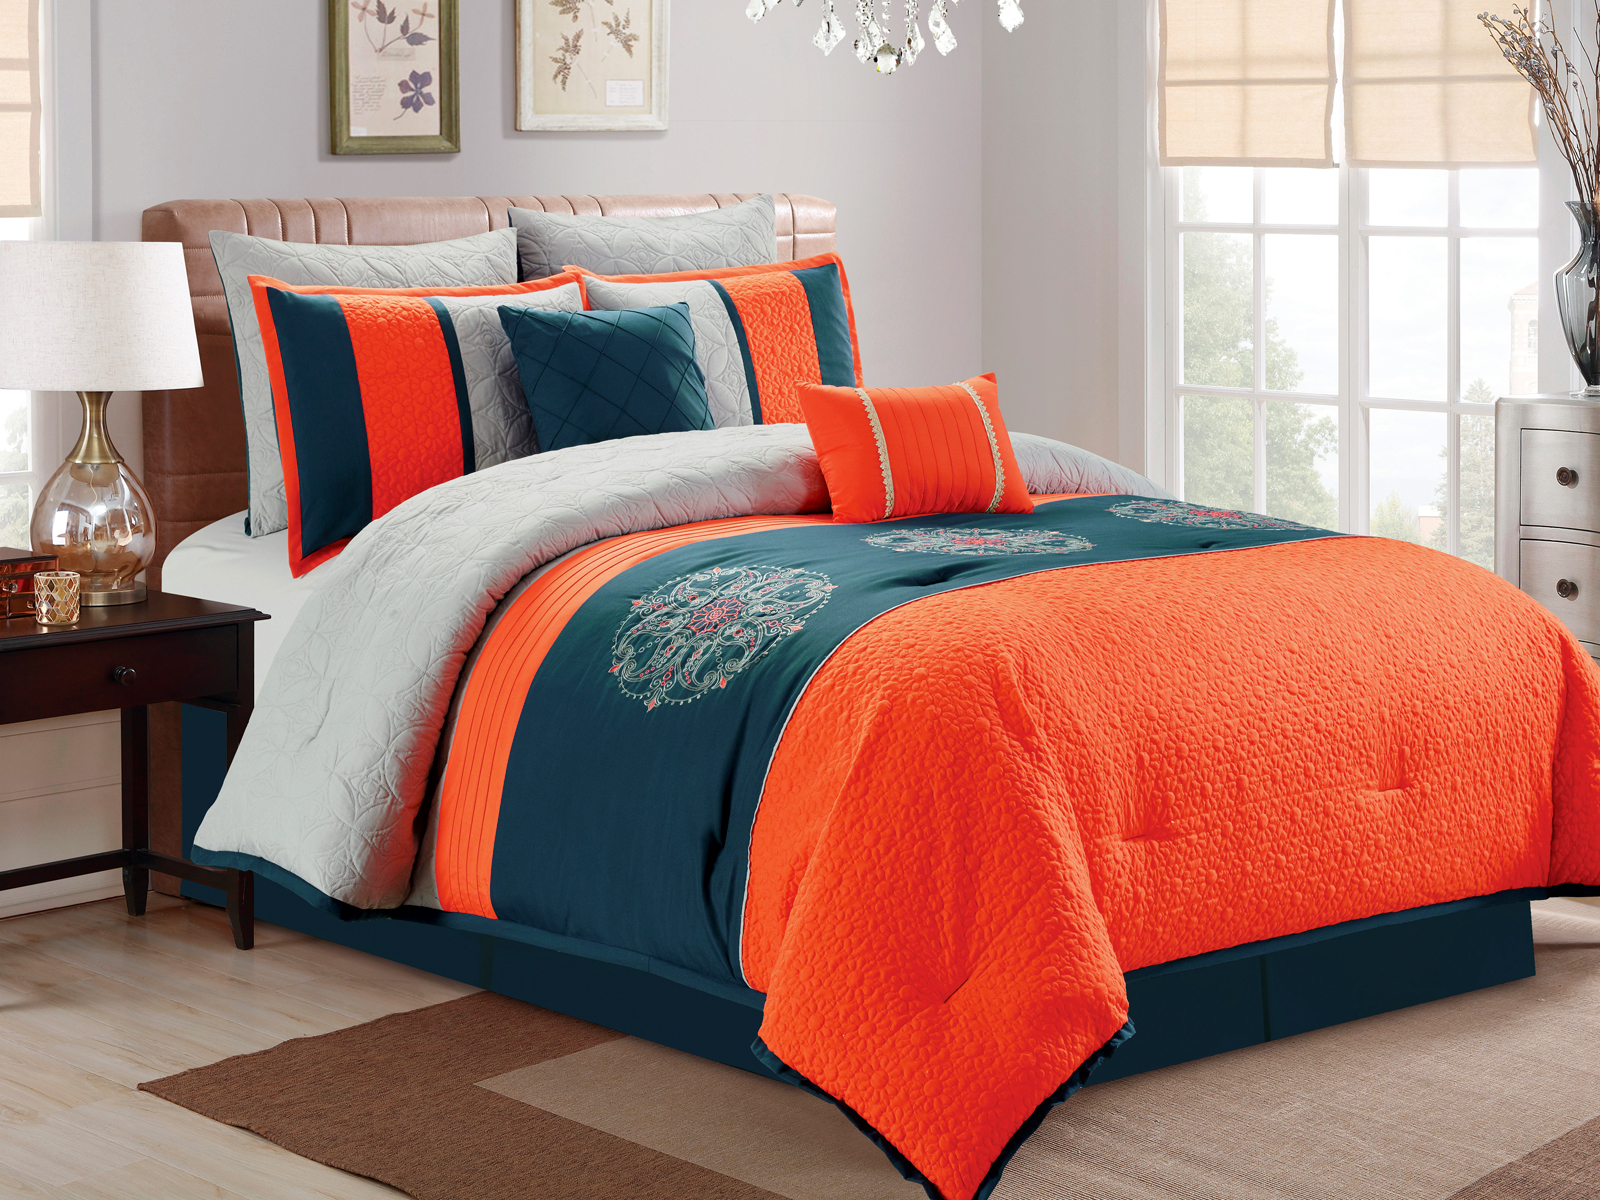 7 Pc Paisley Floral Medallion Embroidery Quilted Embossed Comforter Set Orange Blue Sliver Queen Walmart Com Walmart Com